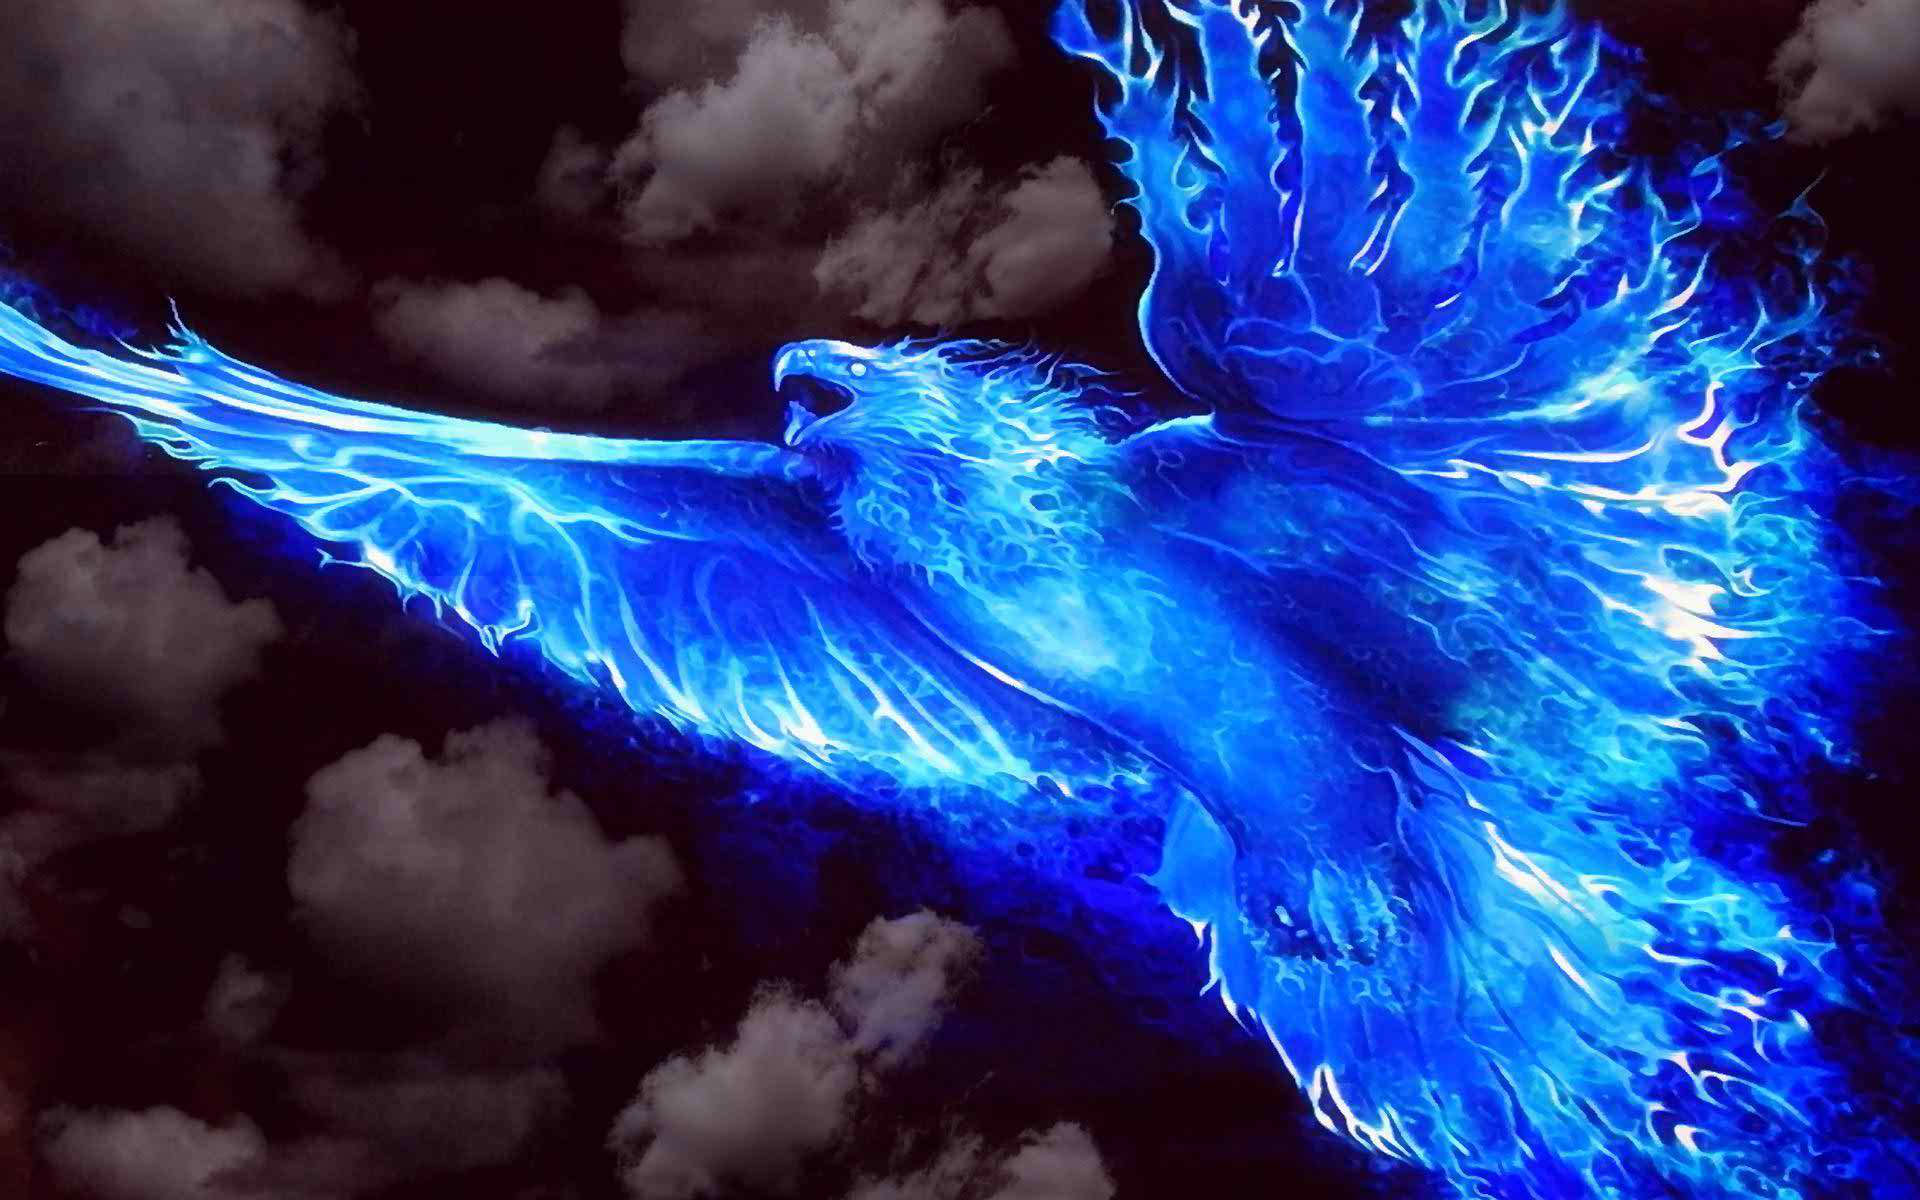 Blue Fire Wallpaper Images amp Pictures   Becuo 1920x1200